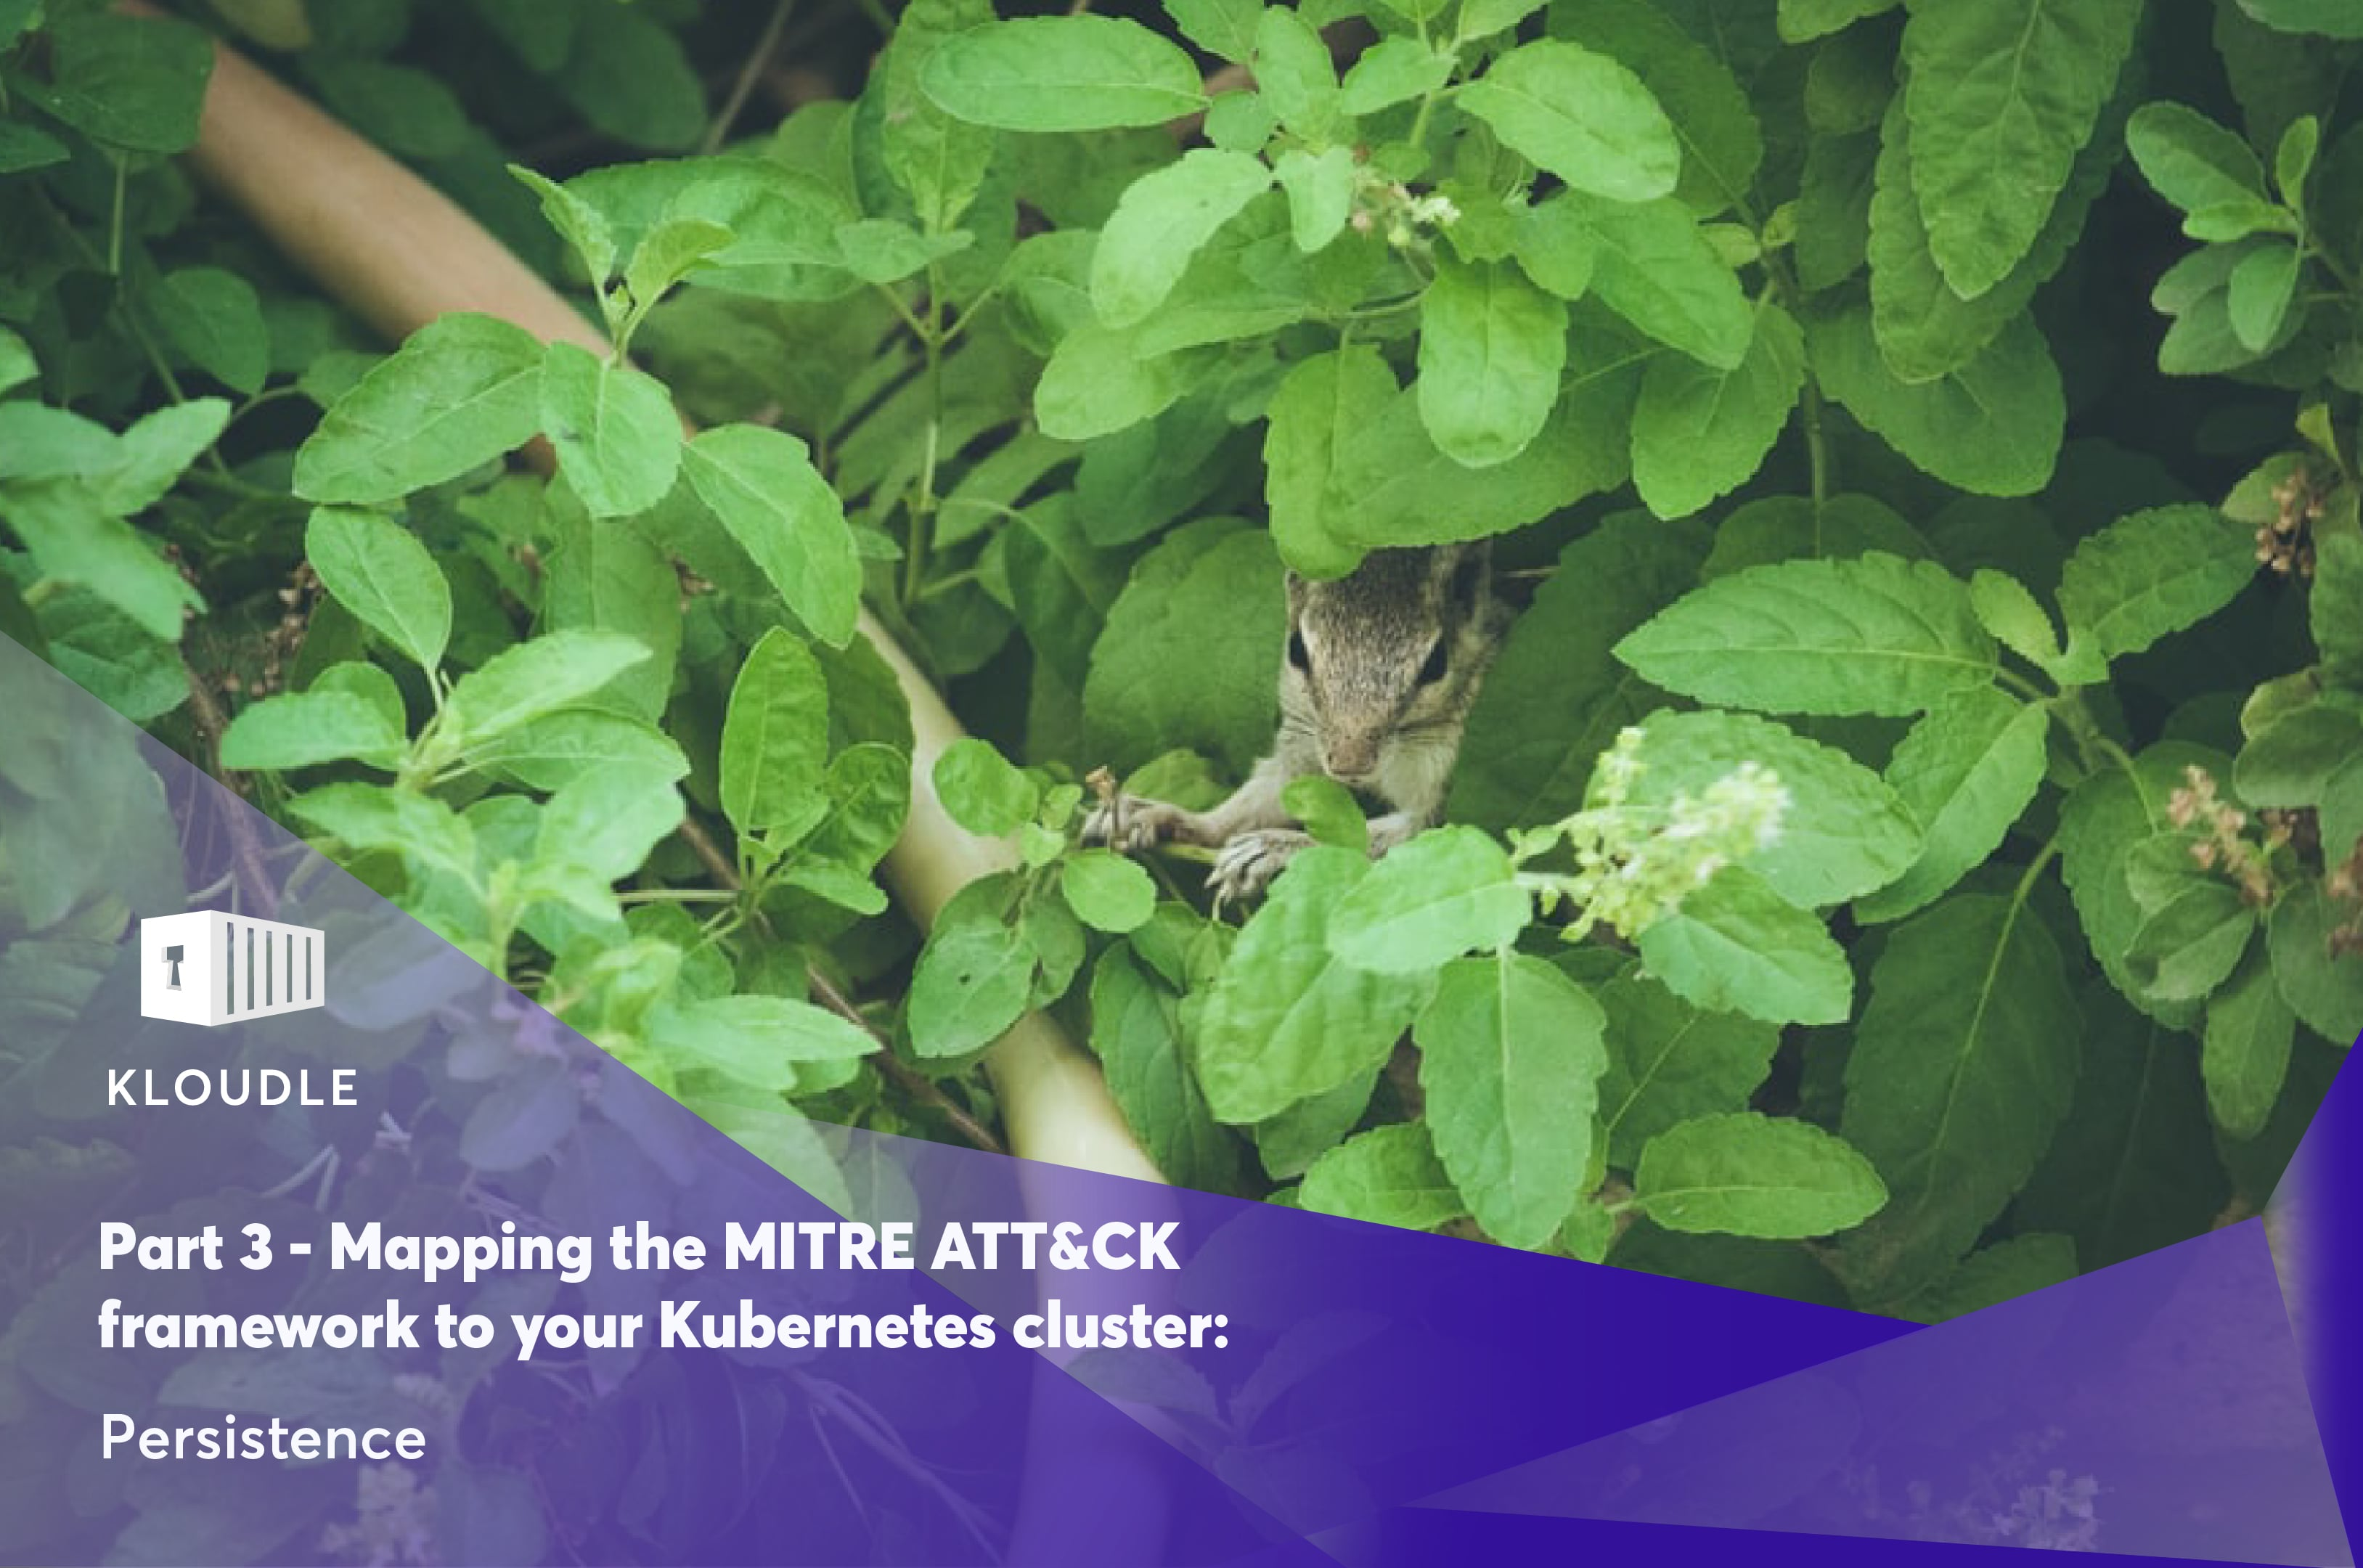 Part 3 - Mapping the MITRE ATT&CK framework to your Kubernetes cluster: Persistence